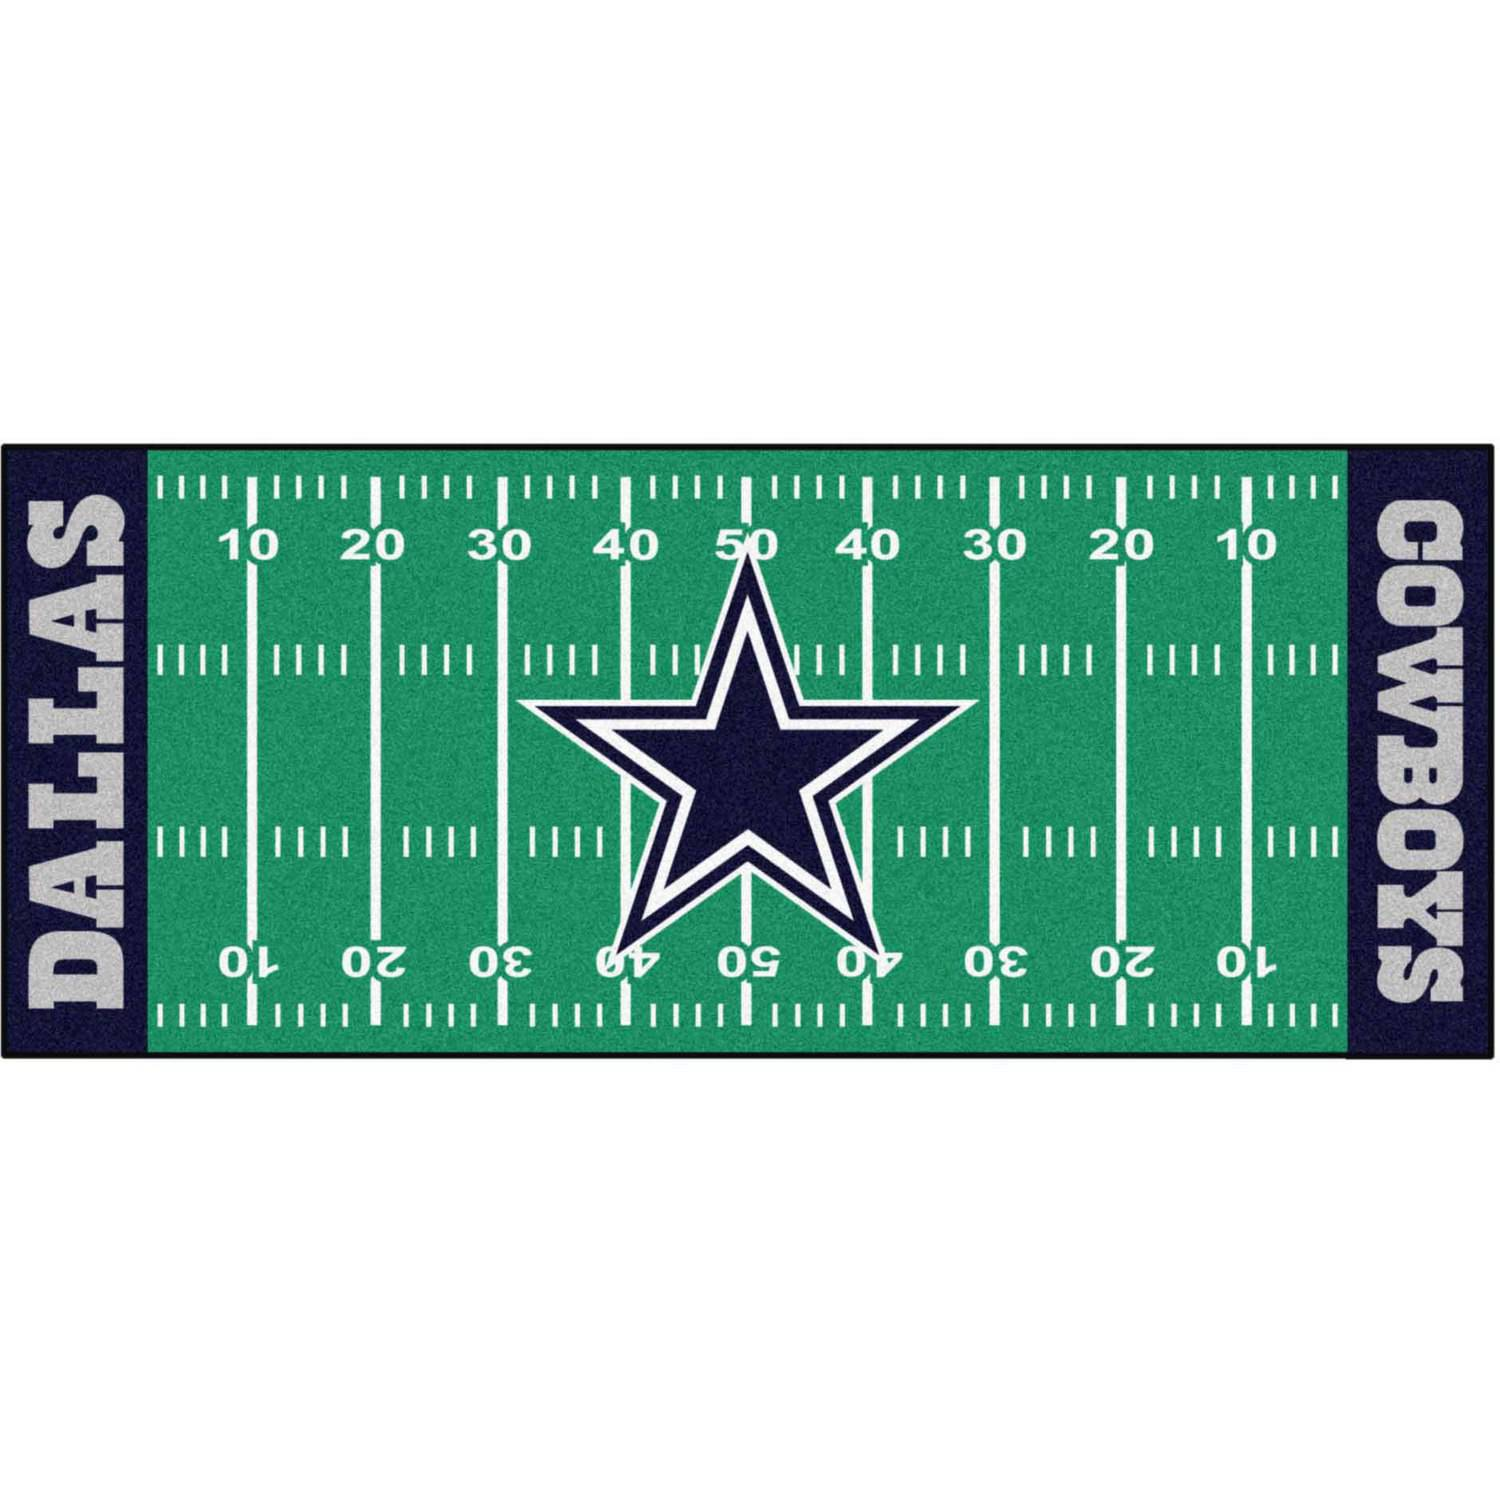 NFL Dallas Cowboys Football Field Runner